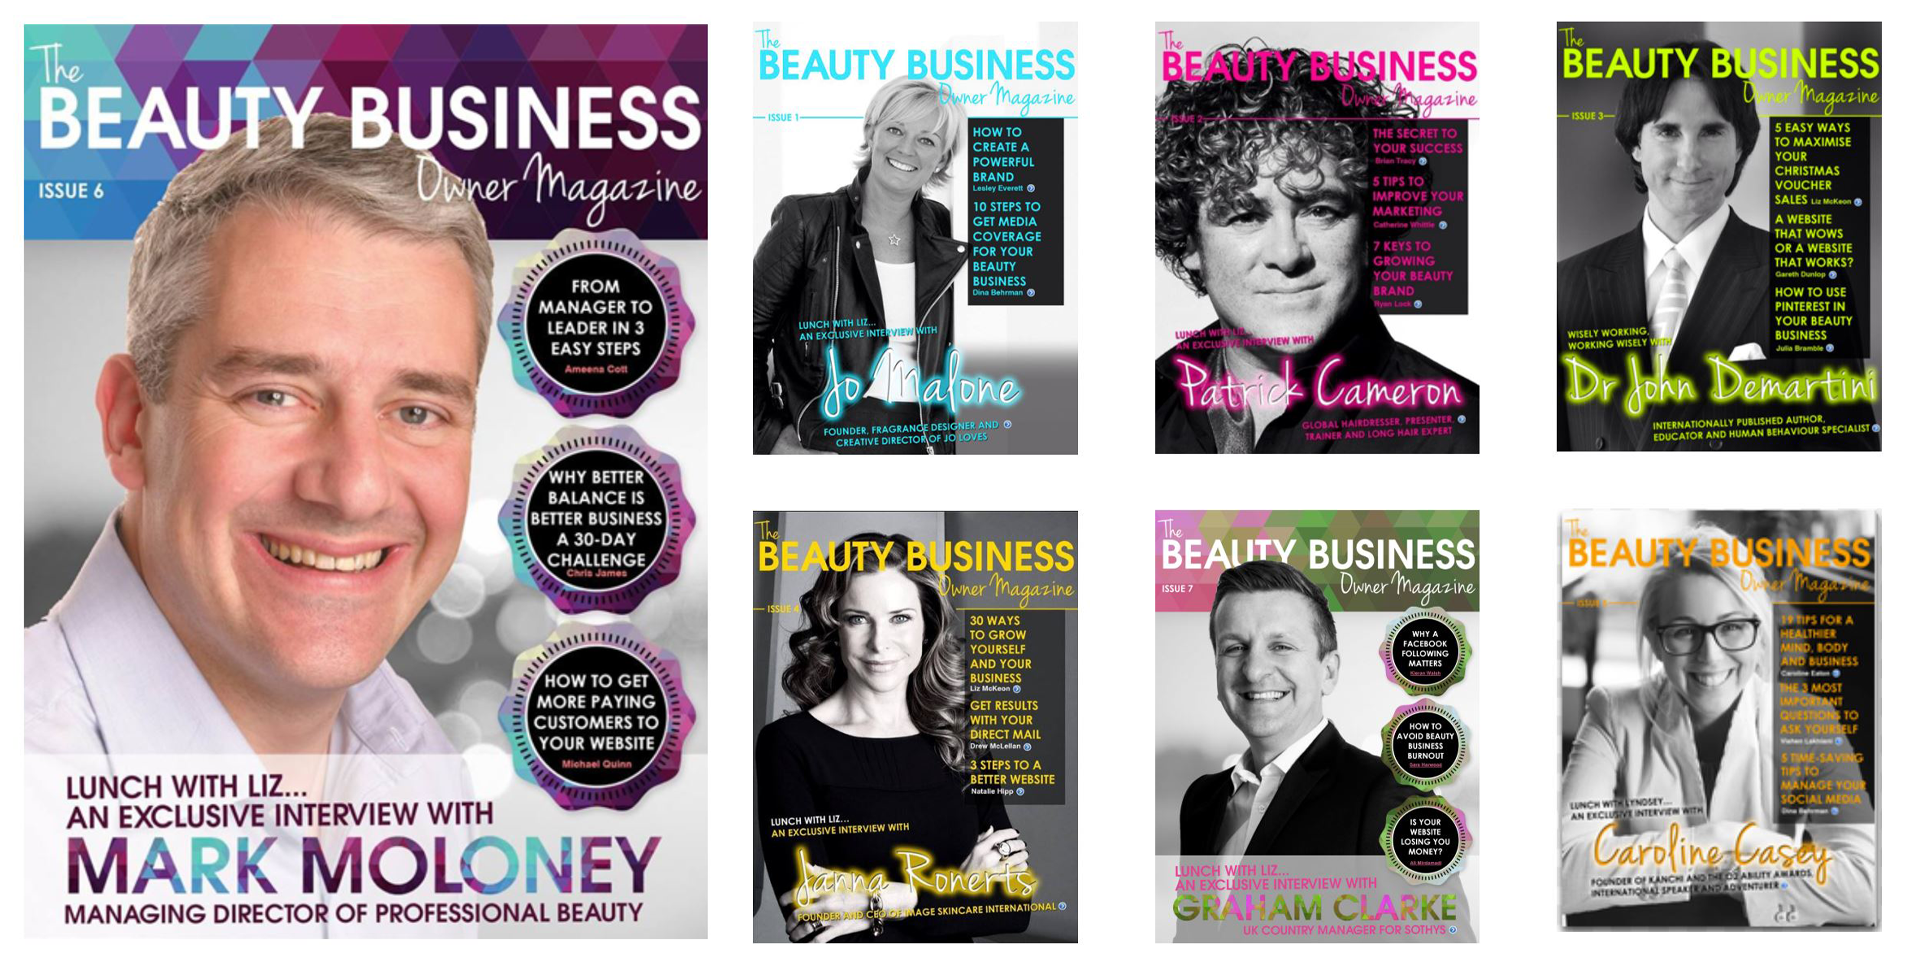 LIZ MCKEON IS A FORMER EDITOR IN CHIEF OF TOP BEAUTY INDUSTRY PUBLICATIONS